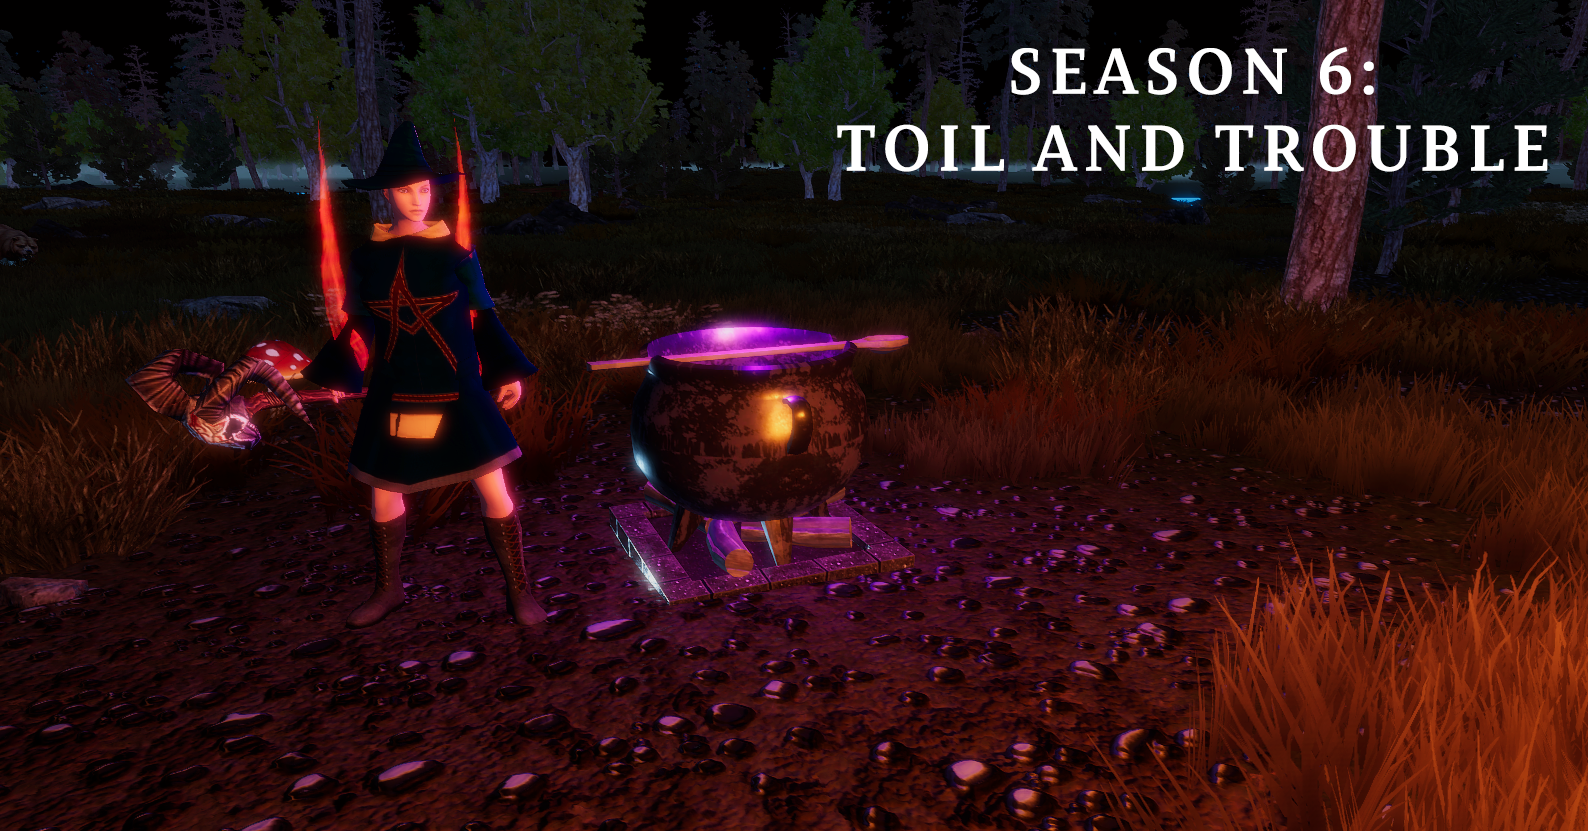 What's New With Season 6: Toil and Trouble